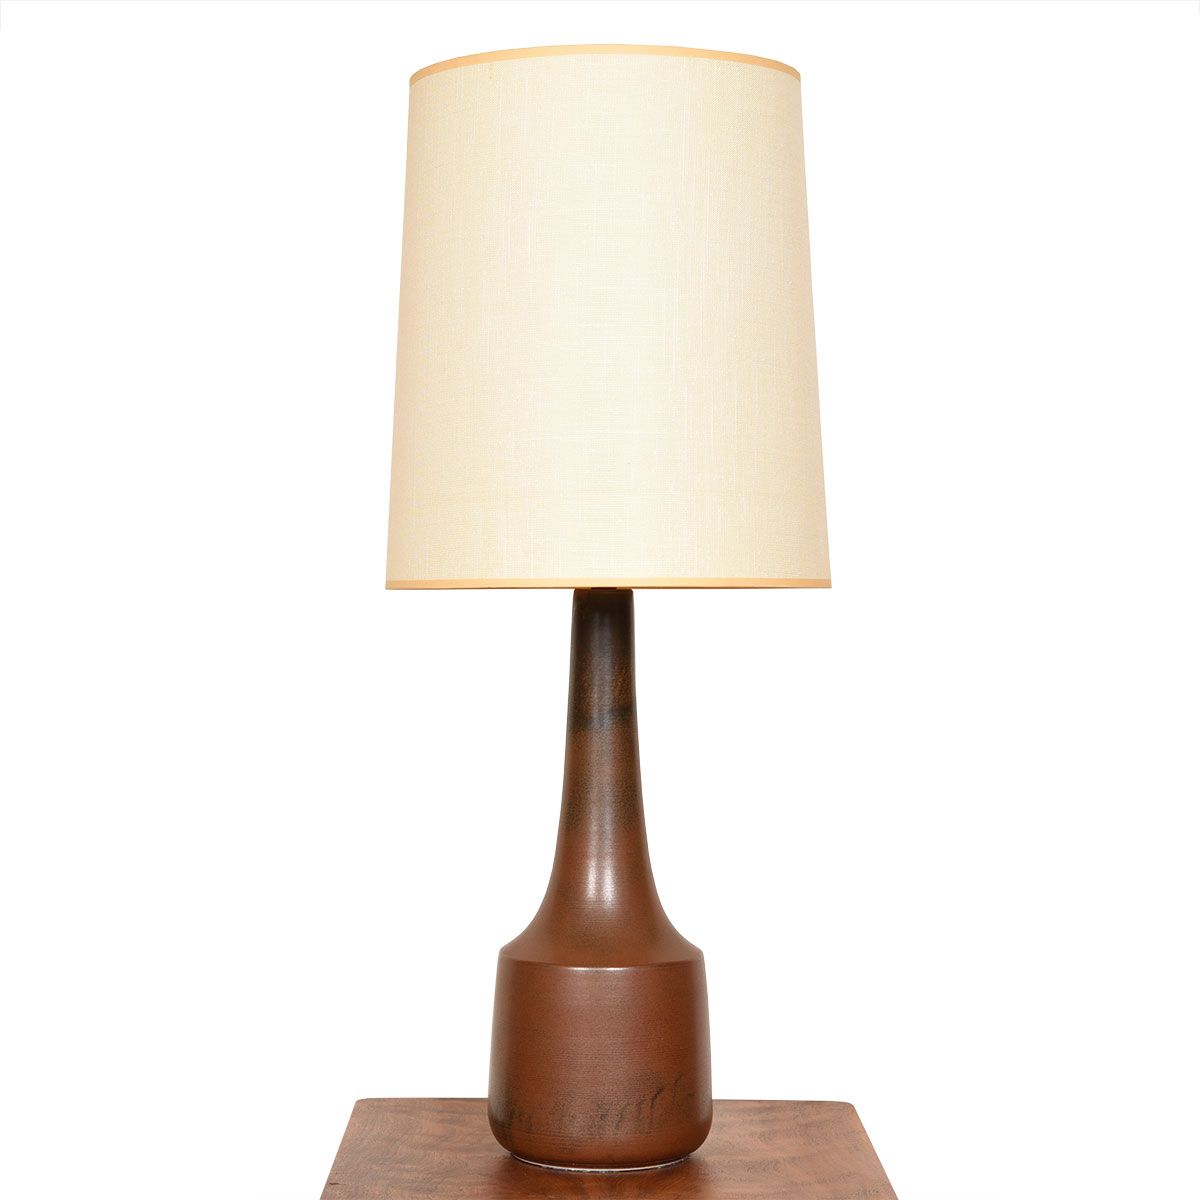 Mid Century Modern Pottery Table Lamp by Bostlund